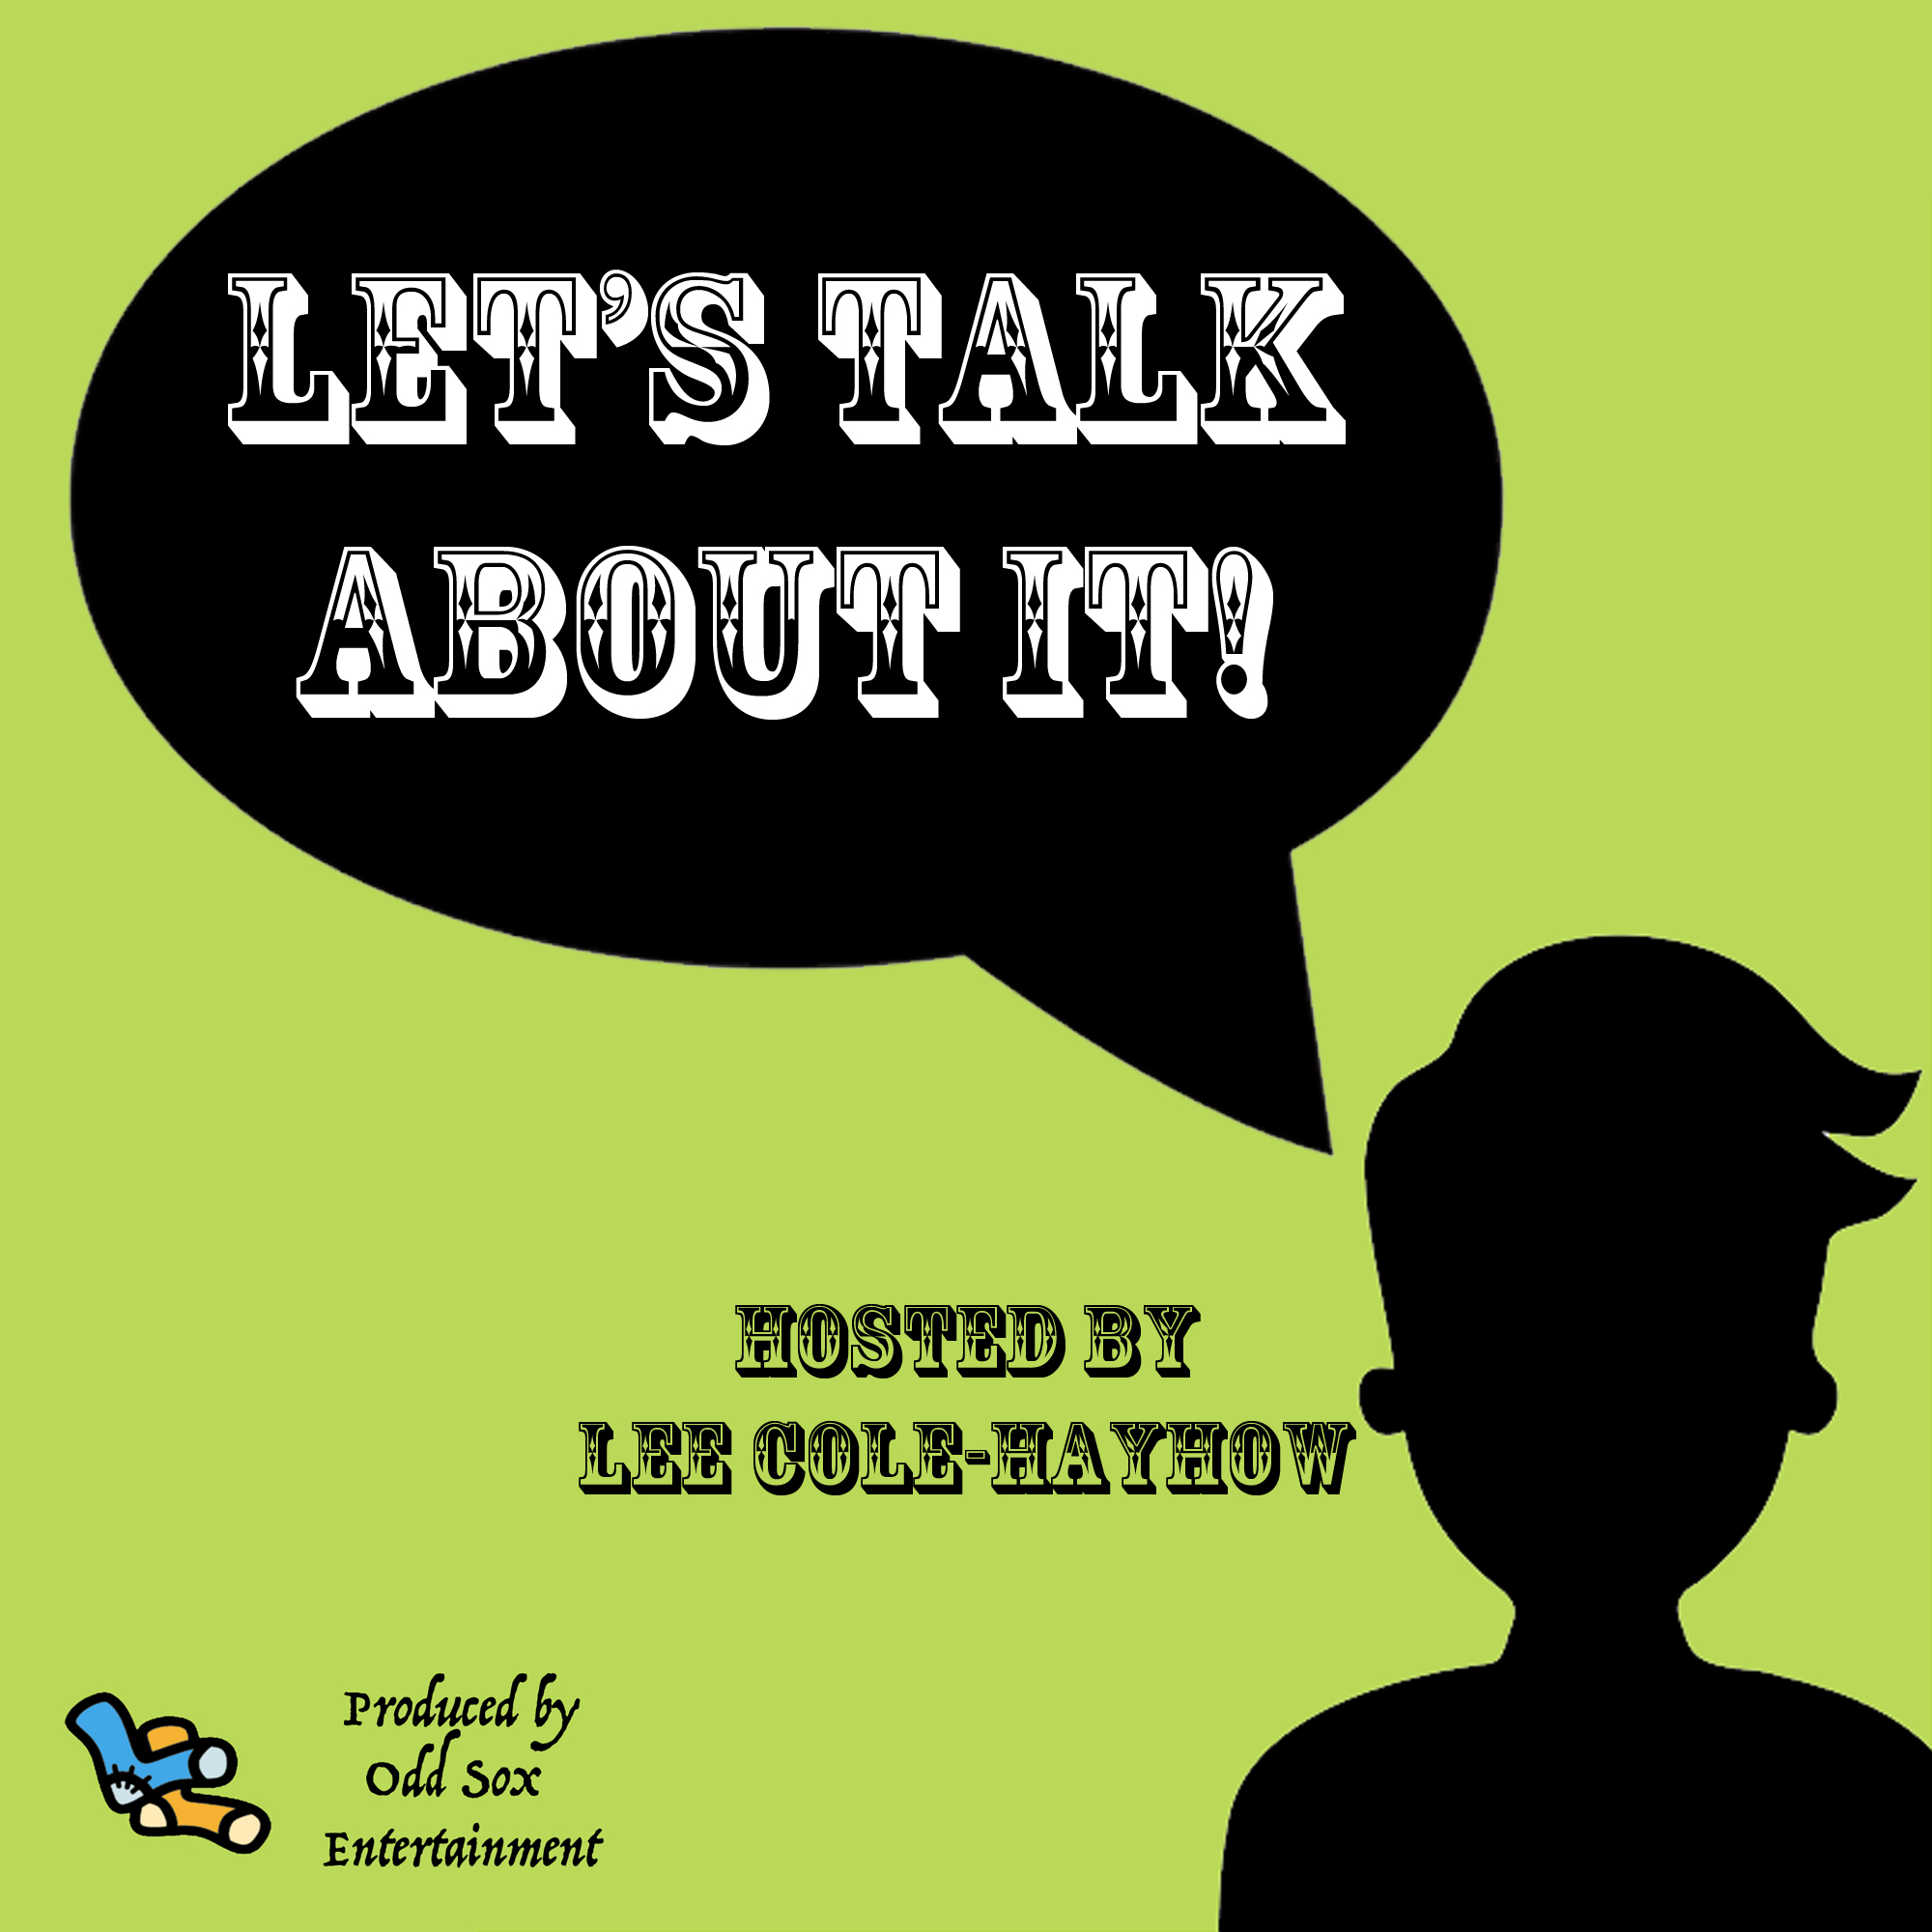 Artwork for podcast Lee Cole-Hayhow's Let's Talk About It